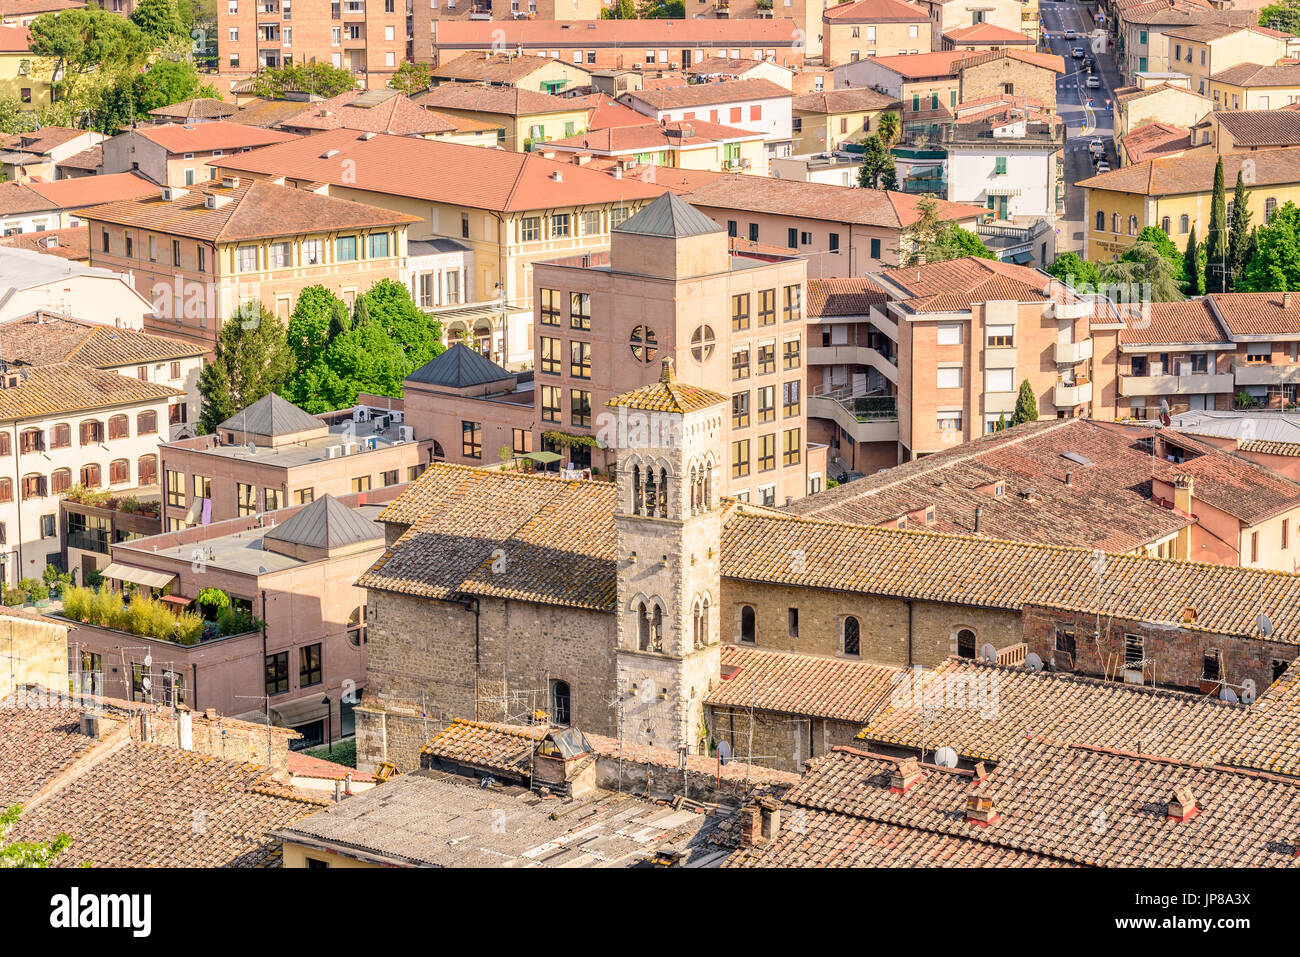 Aerial view of Colle Val d'Elsa, a town near Siena in Tuscany, Italy Stock Photo